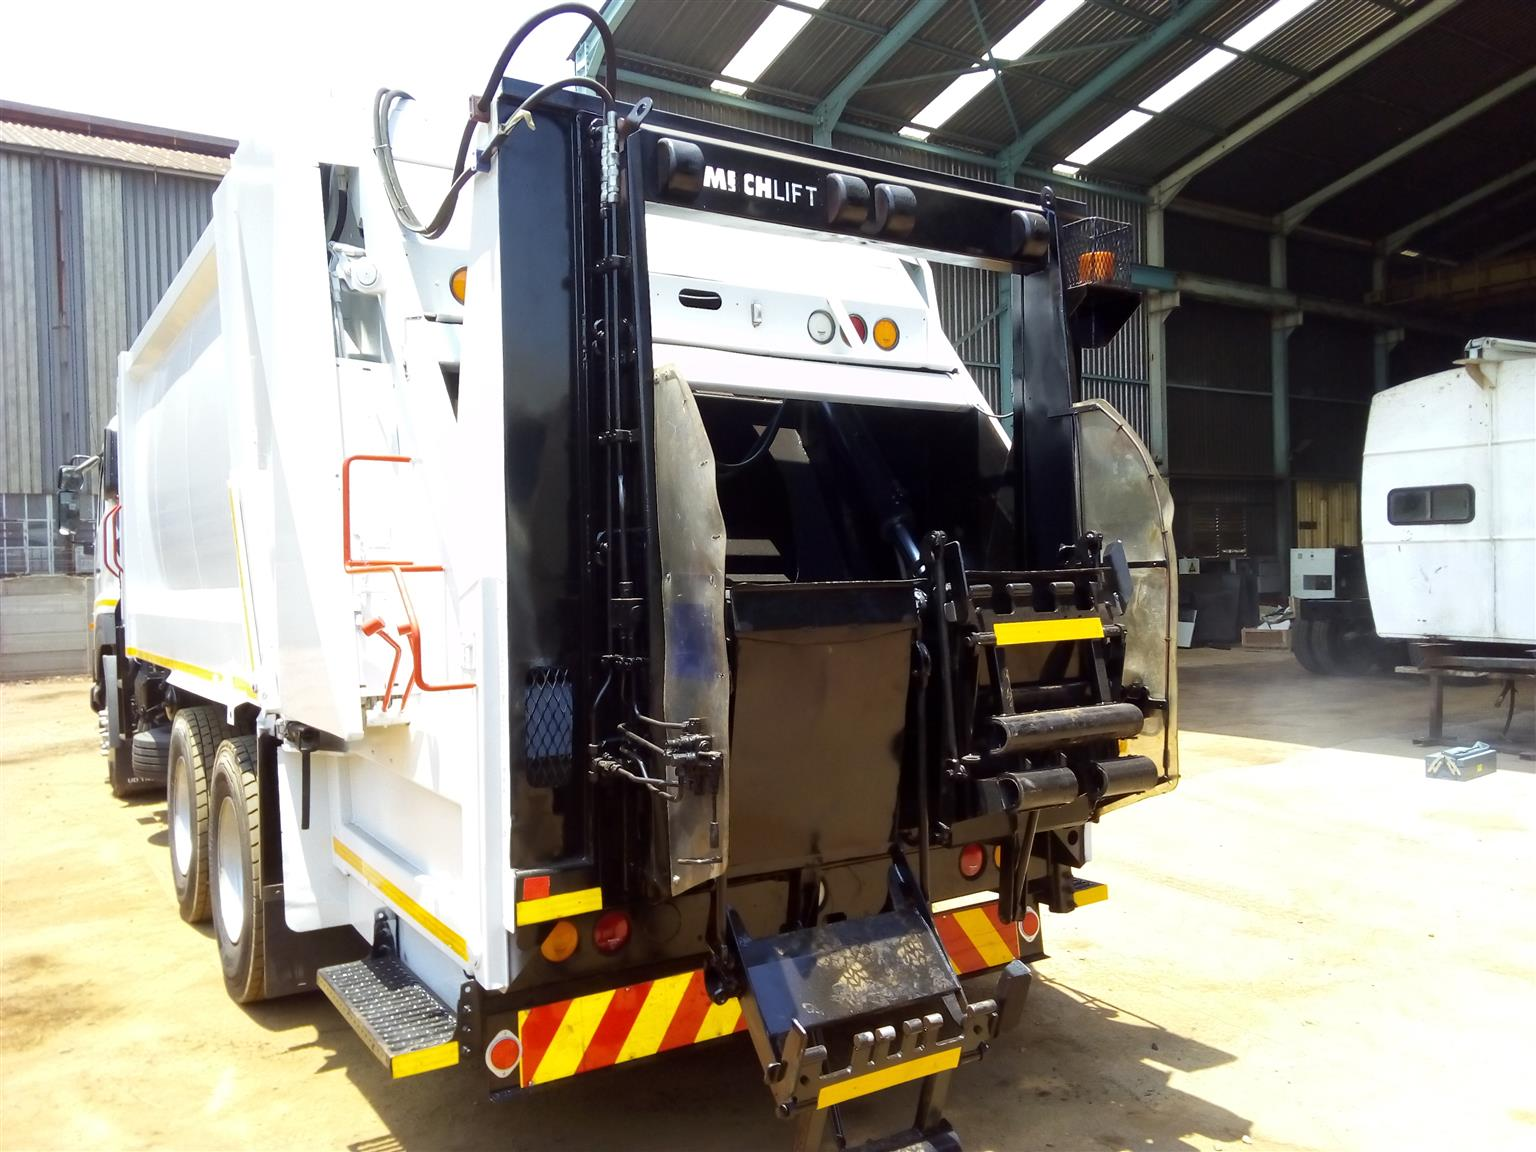 Brand new Compactors. We supply the best!